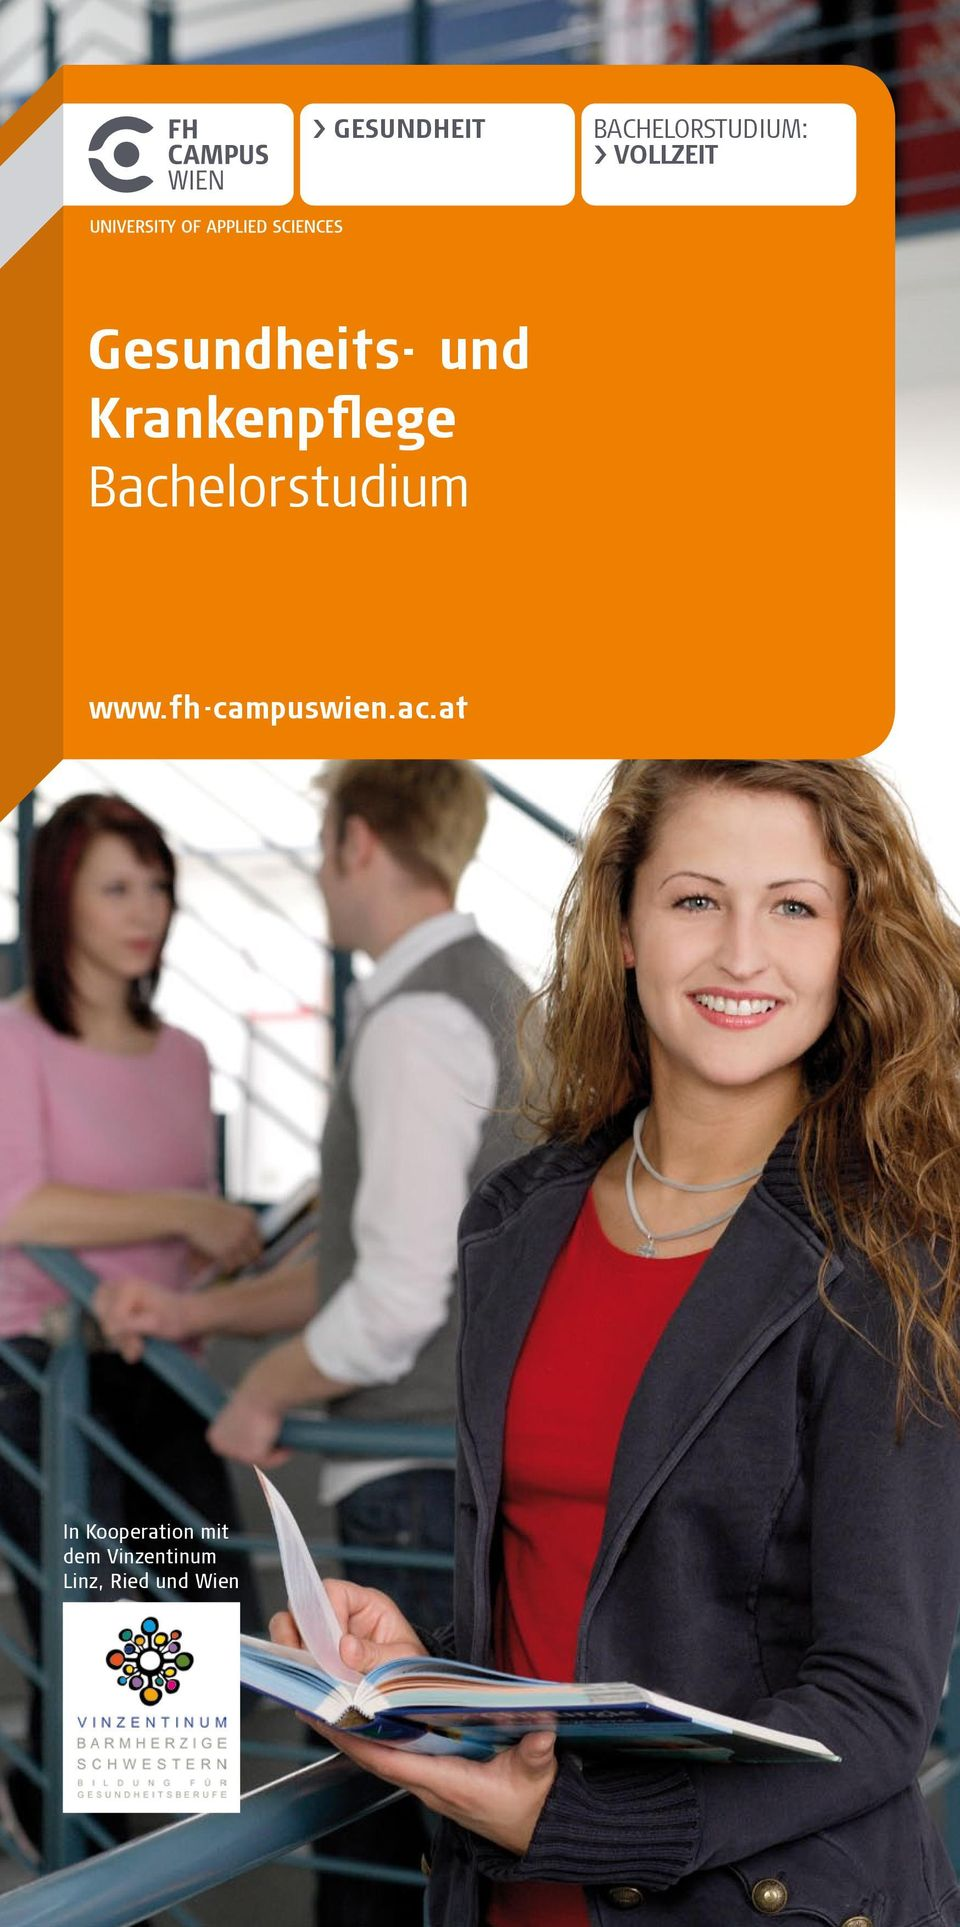 Bachelorstudium www.fh-campuswien.ac.at